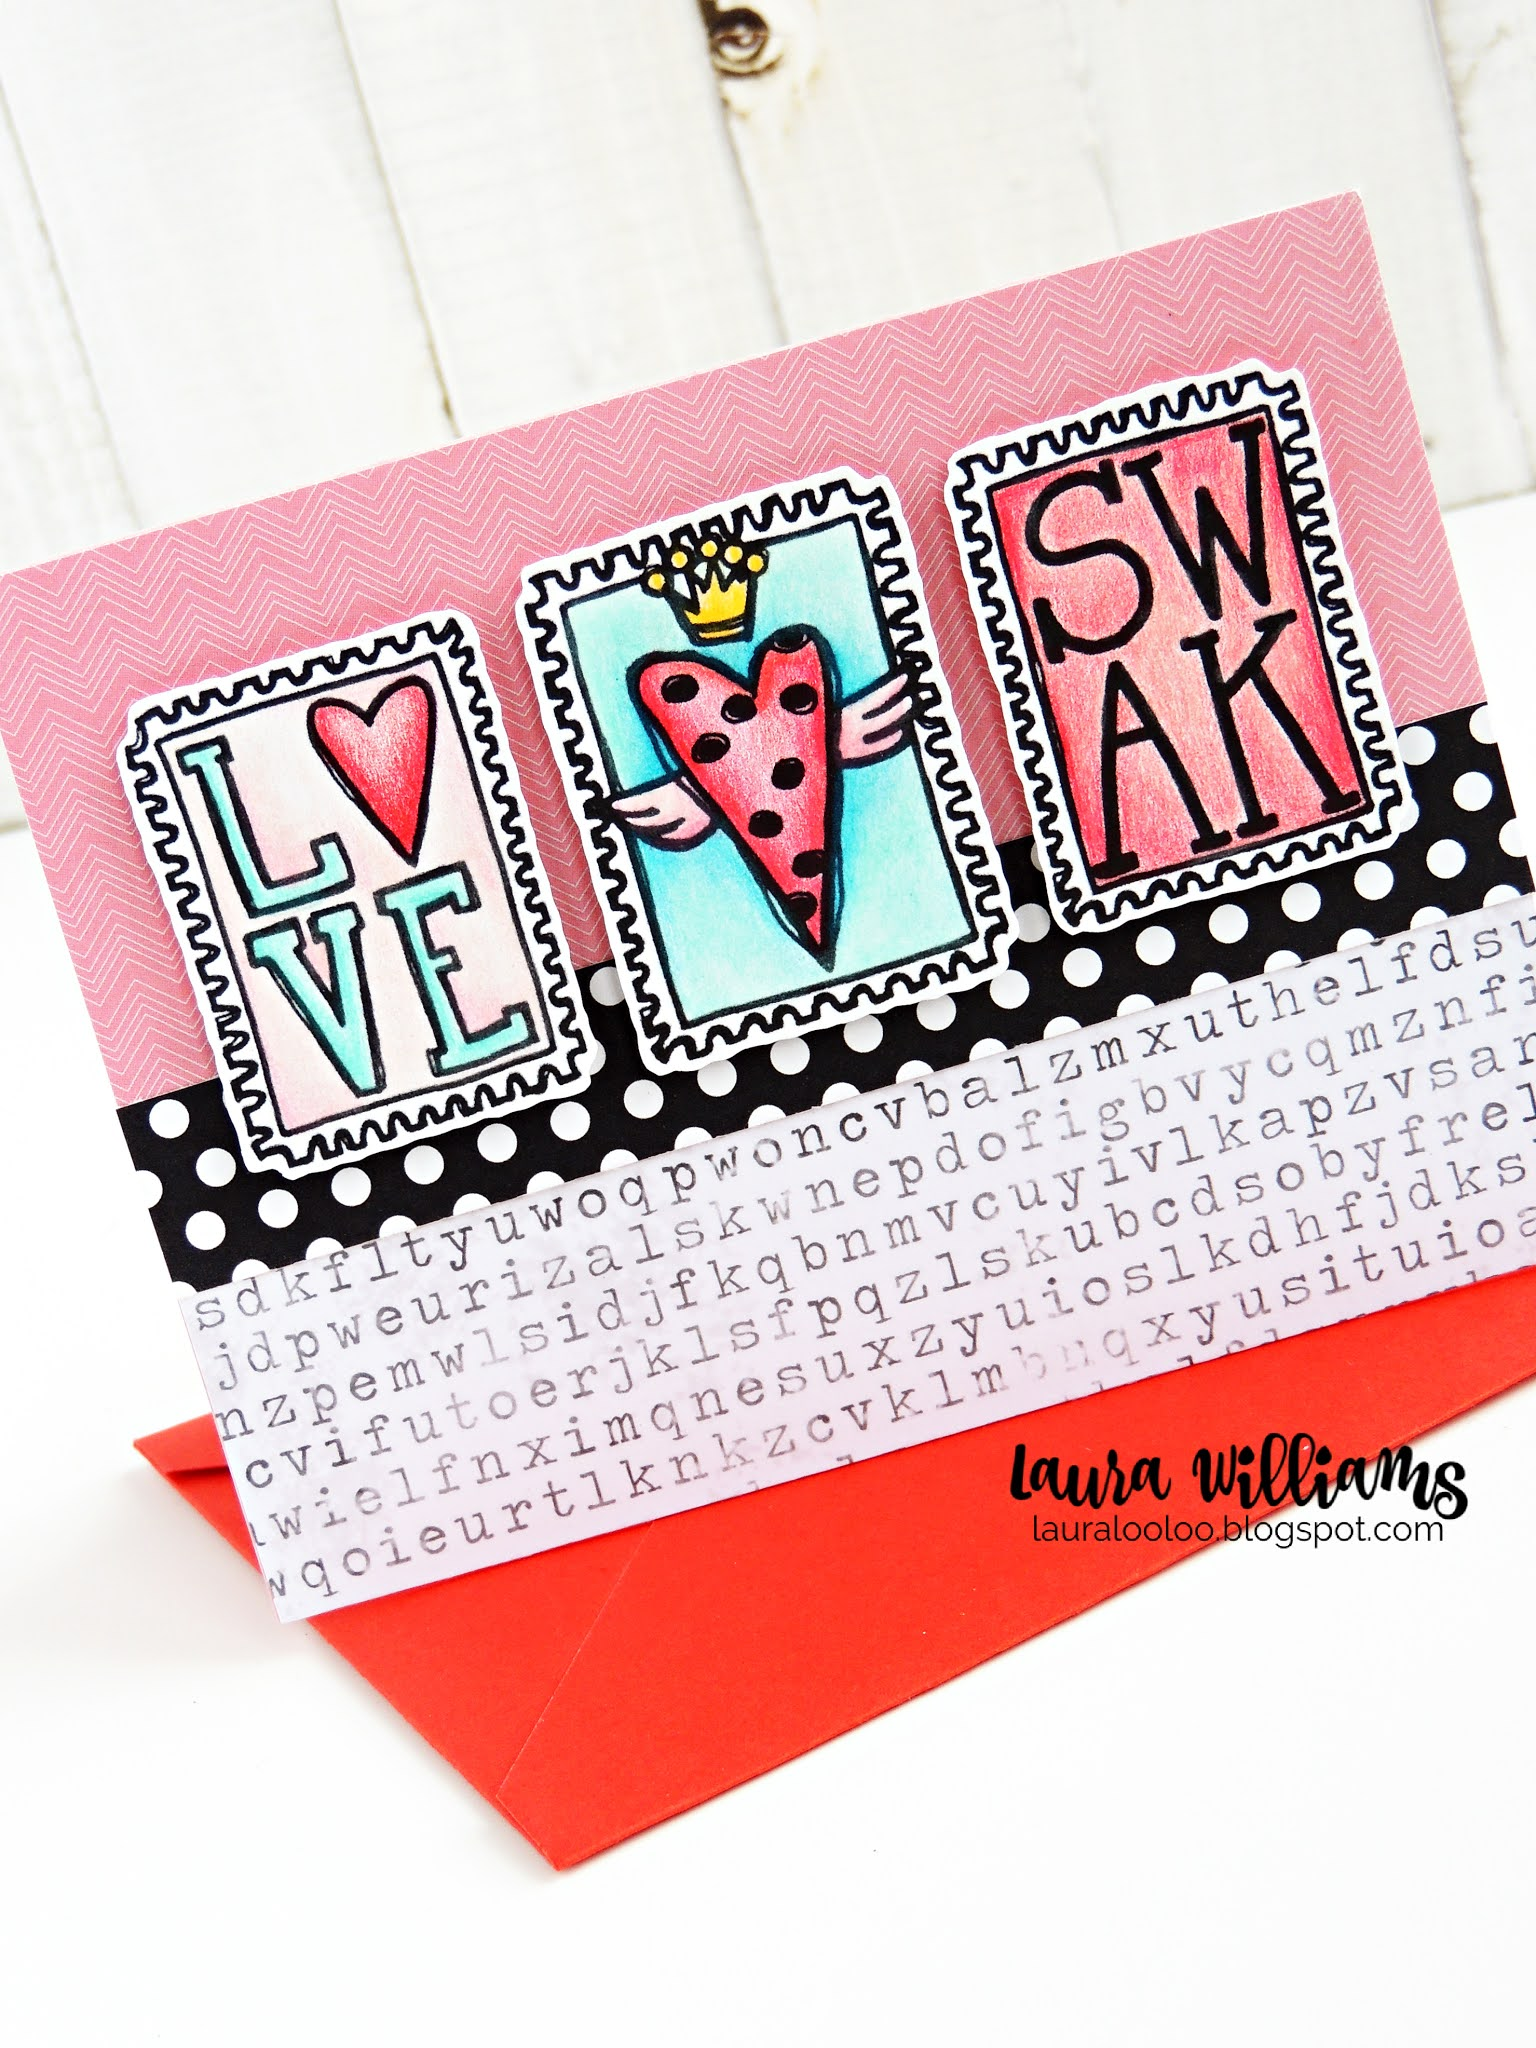 Use these postage stamp rubber stamps from Impression Obsession for handmade Valentine card ideas and crafts. Visit my blog for all the details on this card making idea and more Valentines cards made with stamps and die cutting.